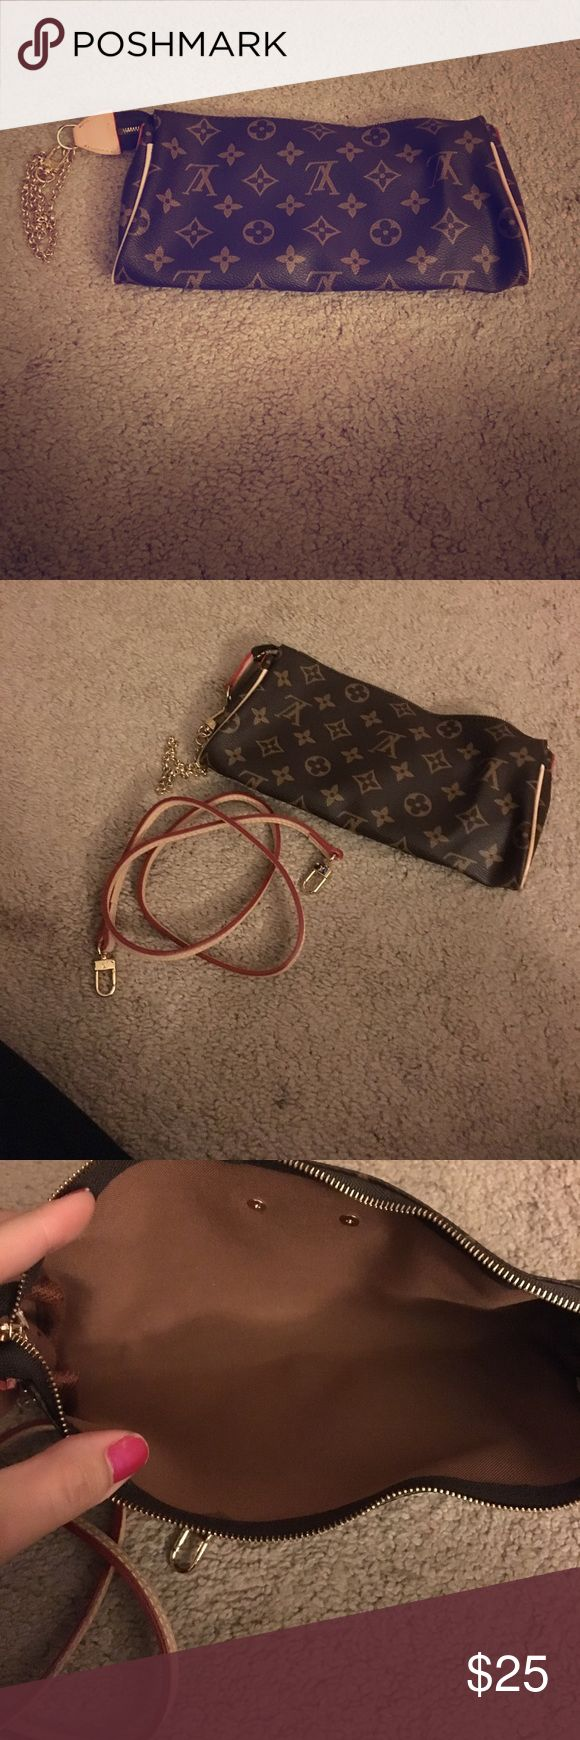 NOT REAL Louis Vuitton clutch/hand bag It may not be real but it's one hell of a knock off and I've never used it! Someone needs to!! Bags